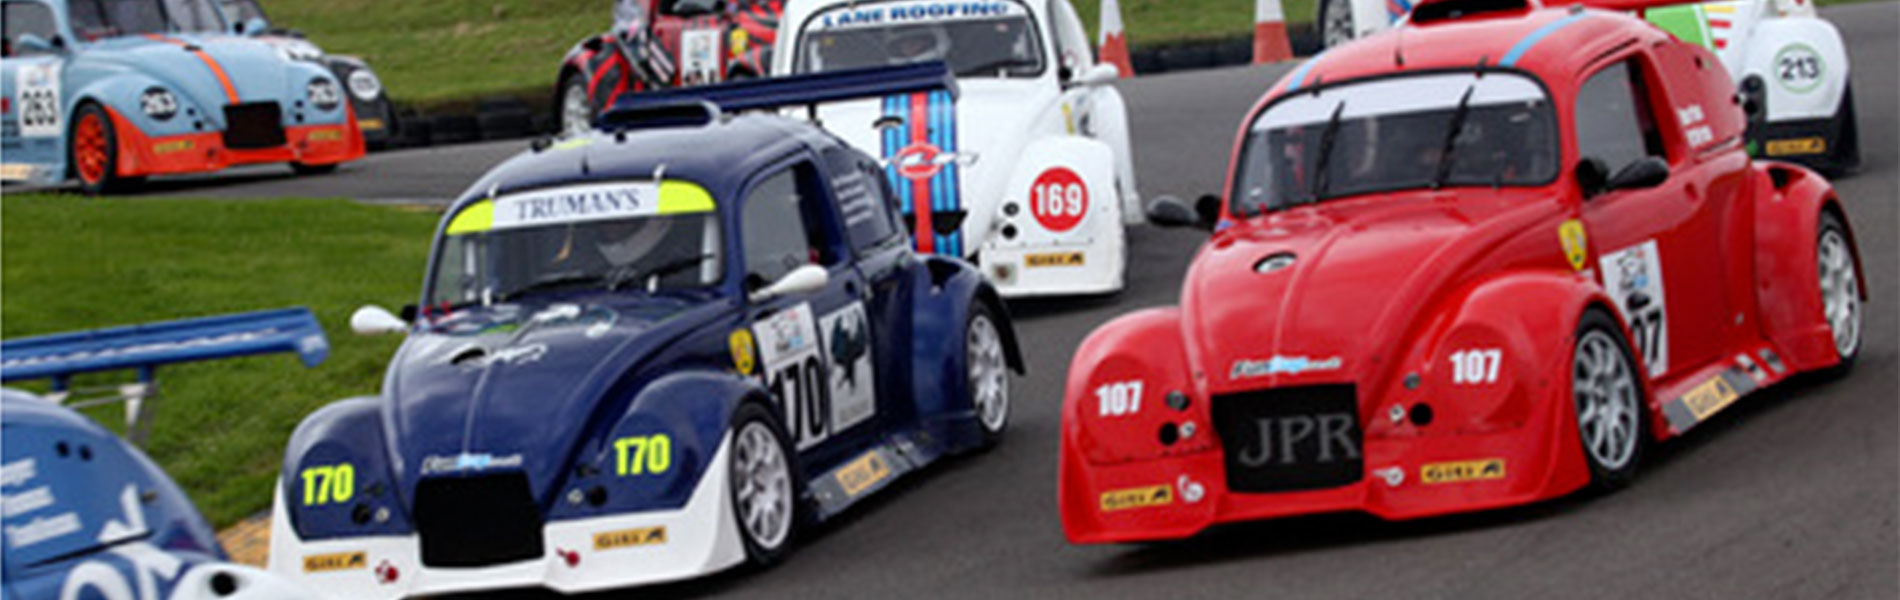 final-fun-at-oulton-park-motorsportdays-track-days-1